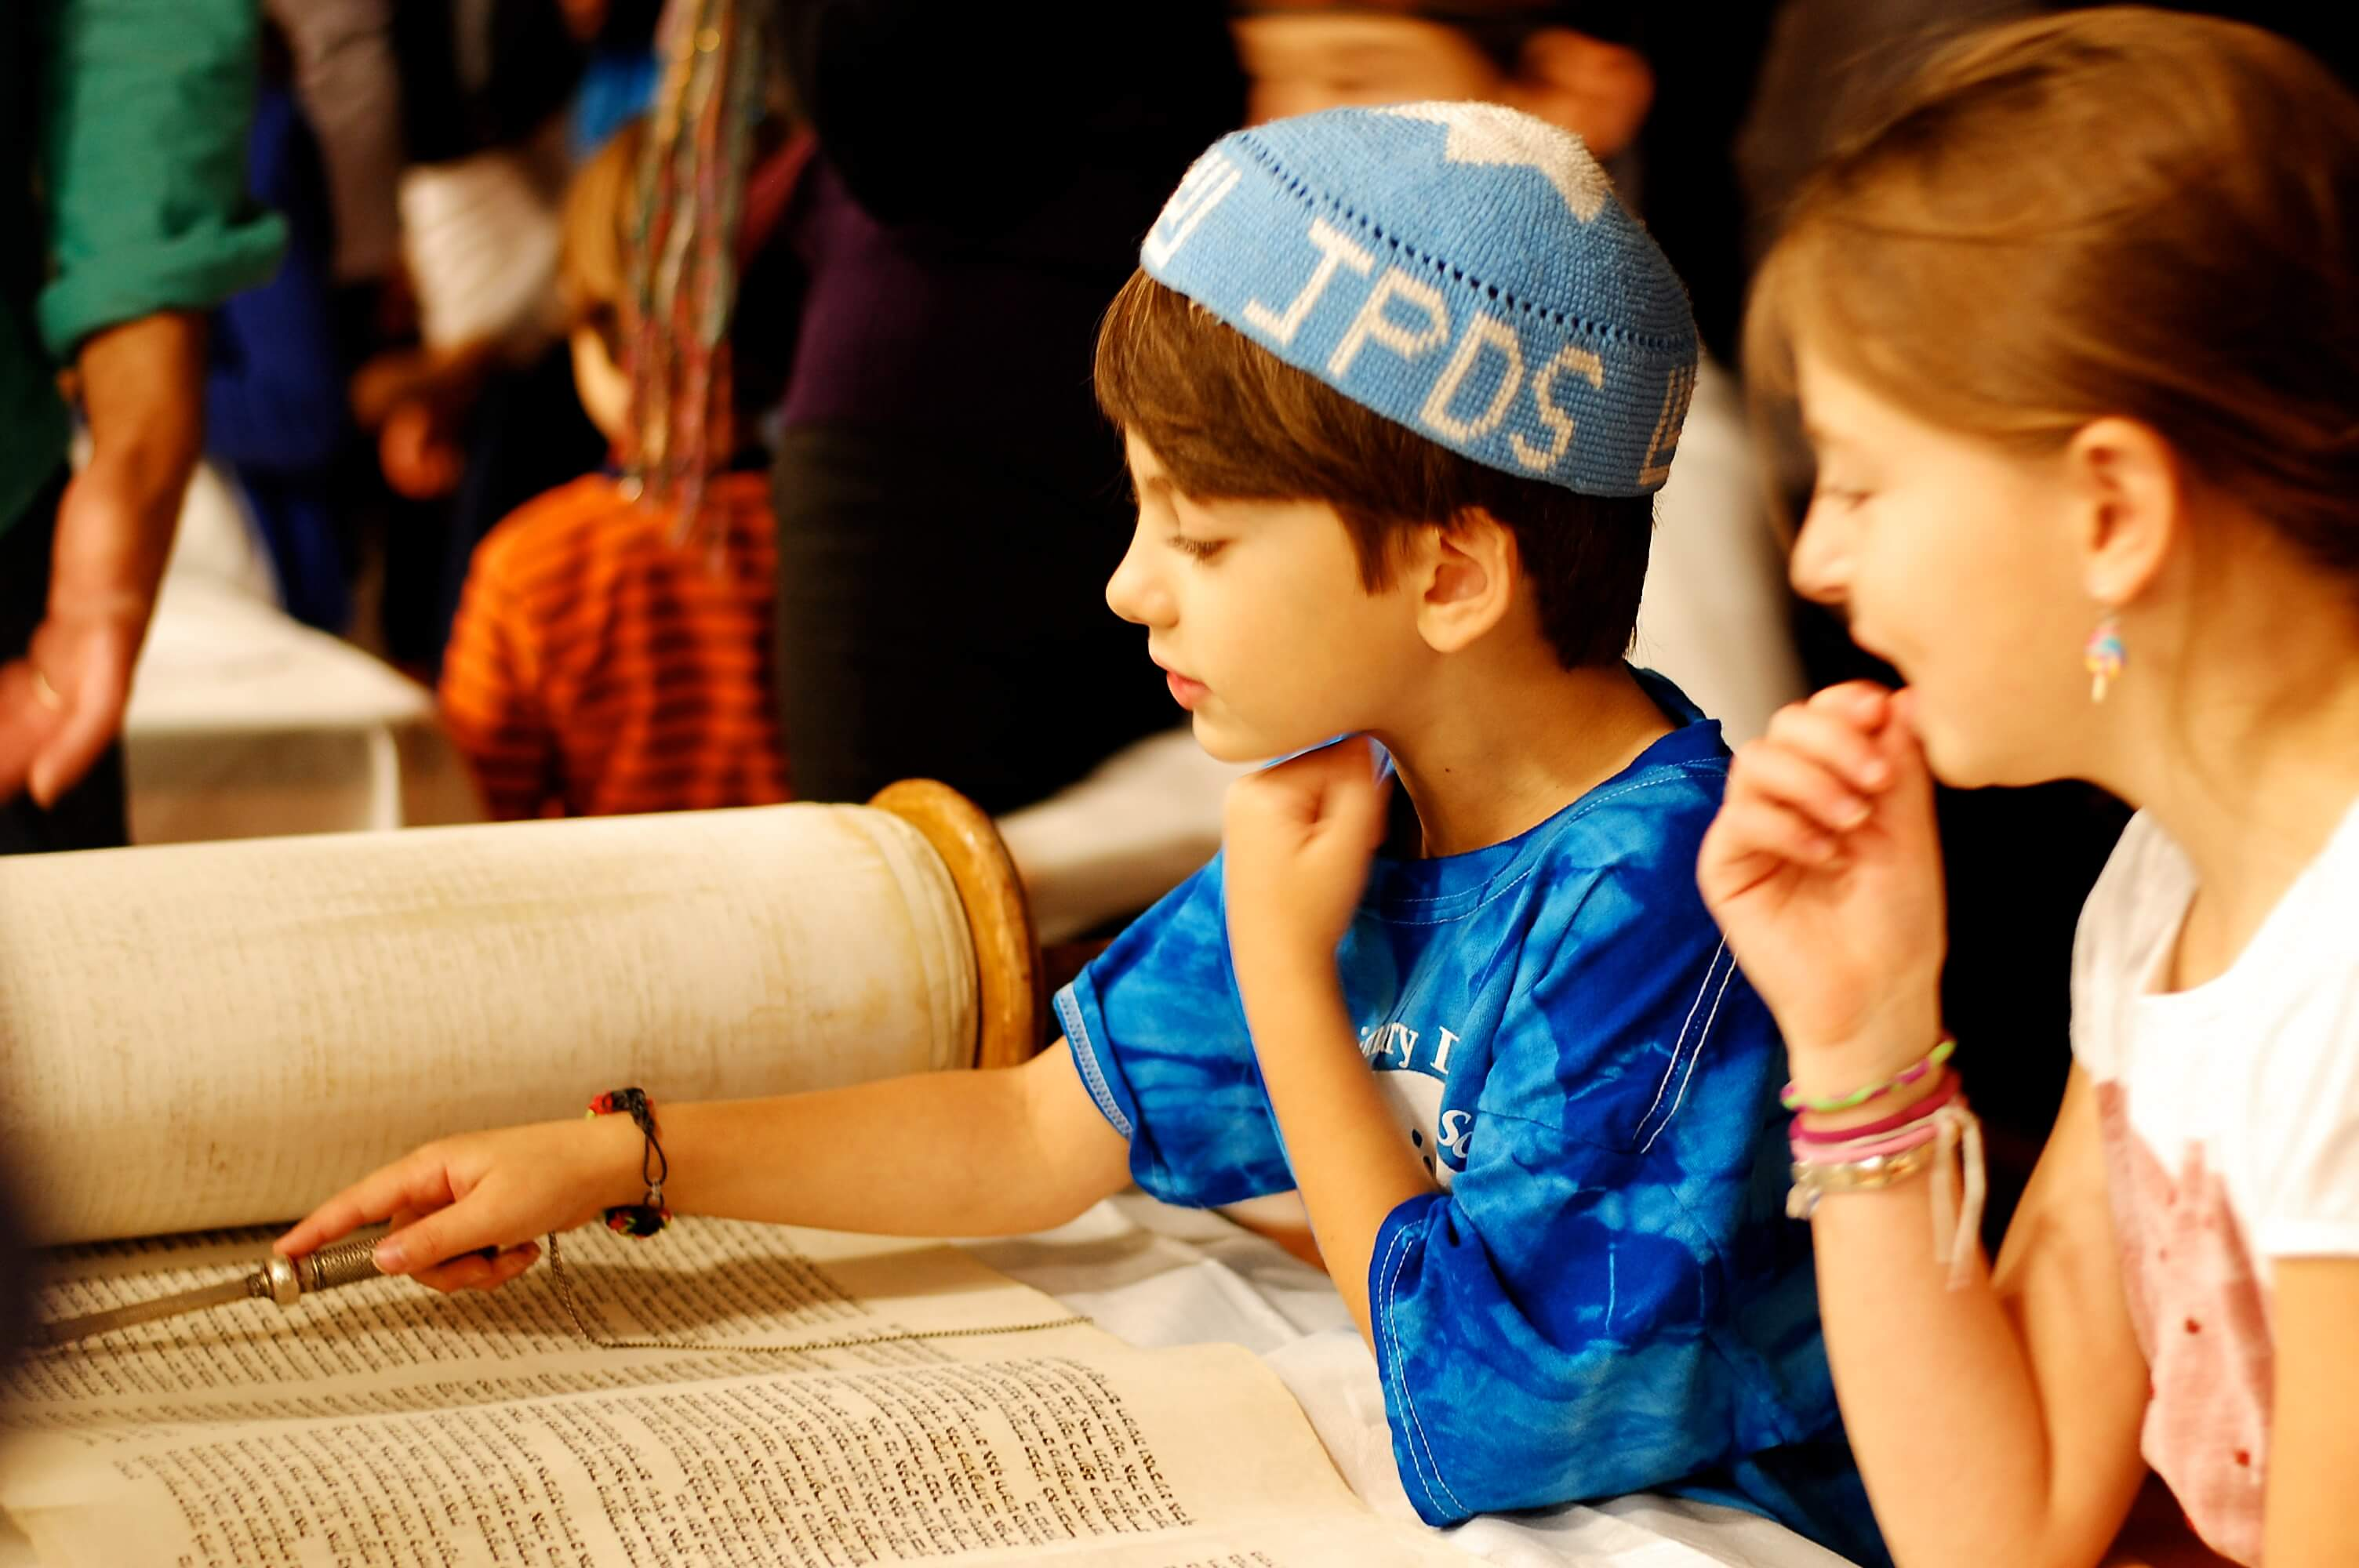 Students learn about different types of Torah scrolls at a school event.